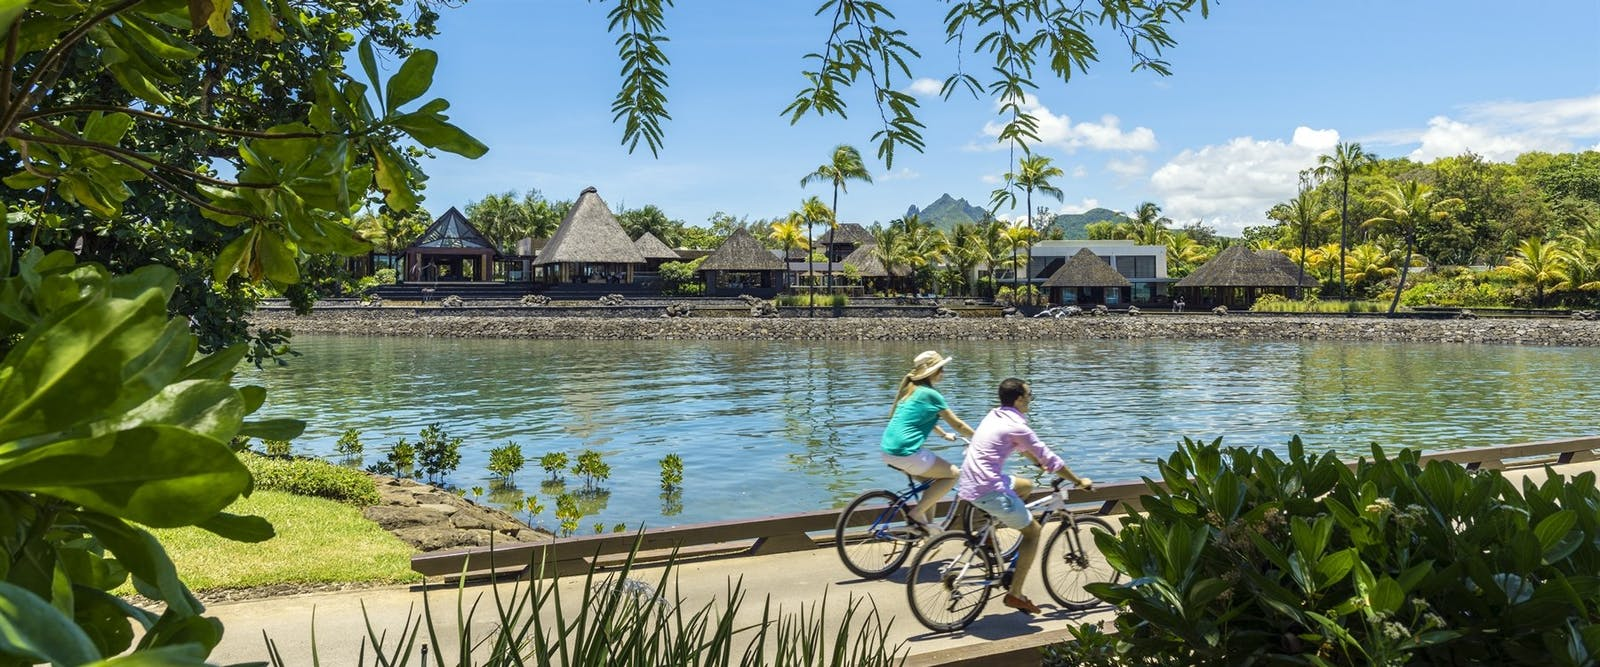 Cycle around Four Seasons Resort Mauritius at Anahita